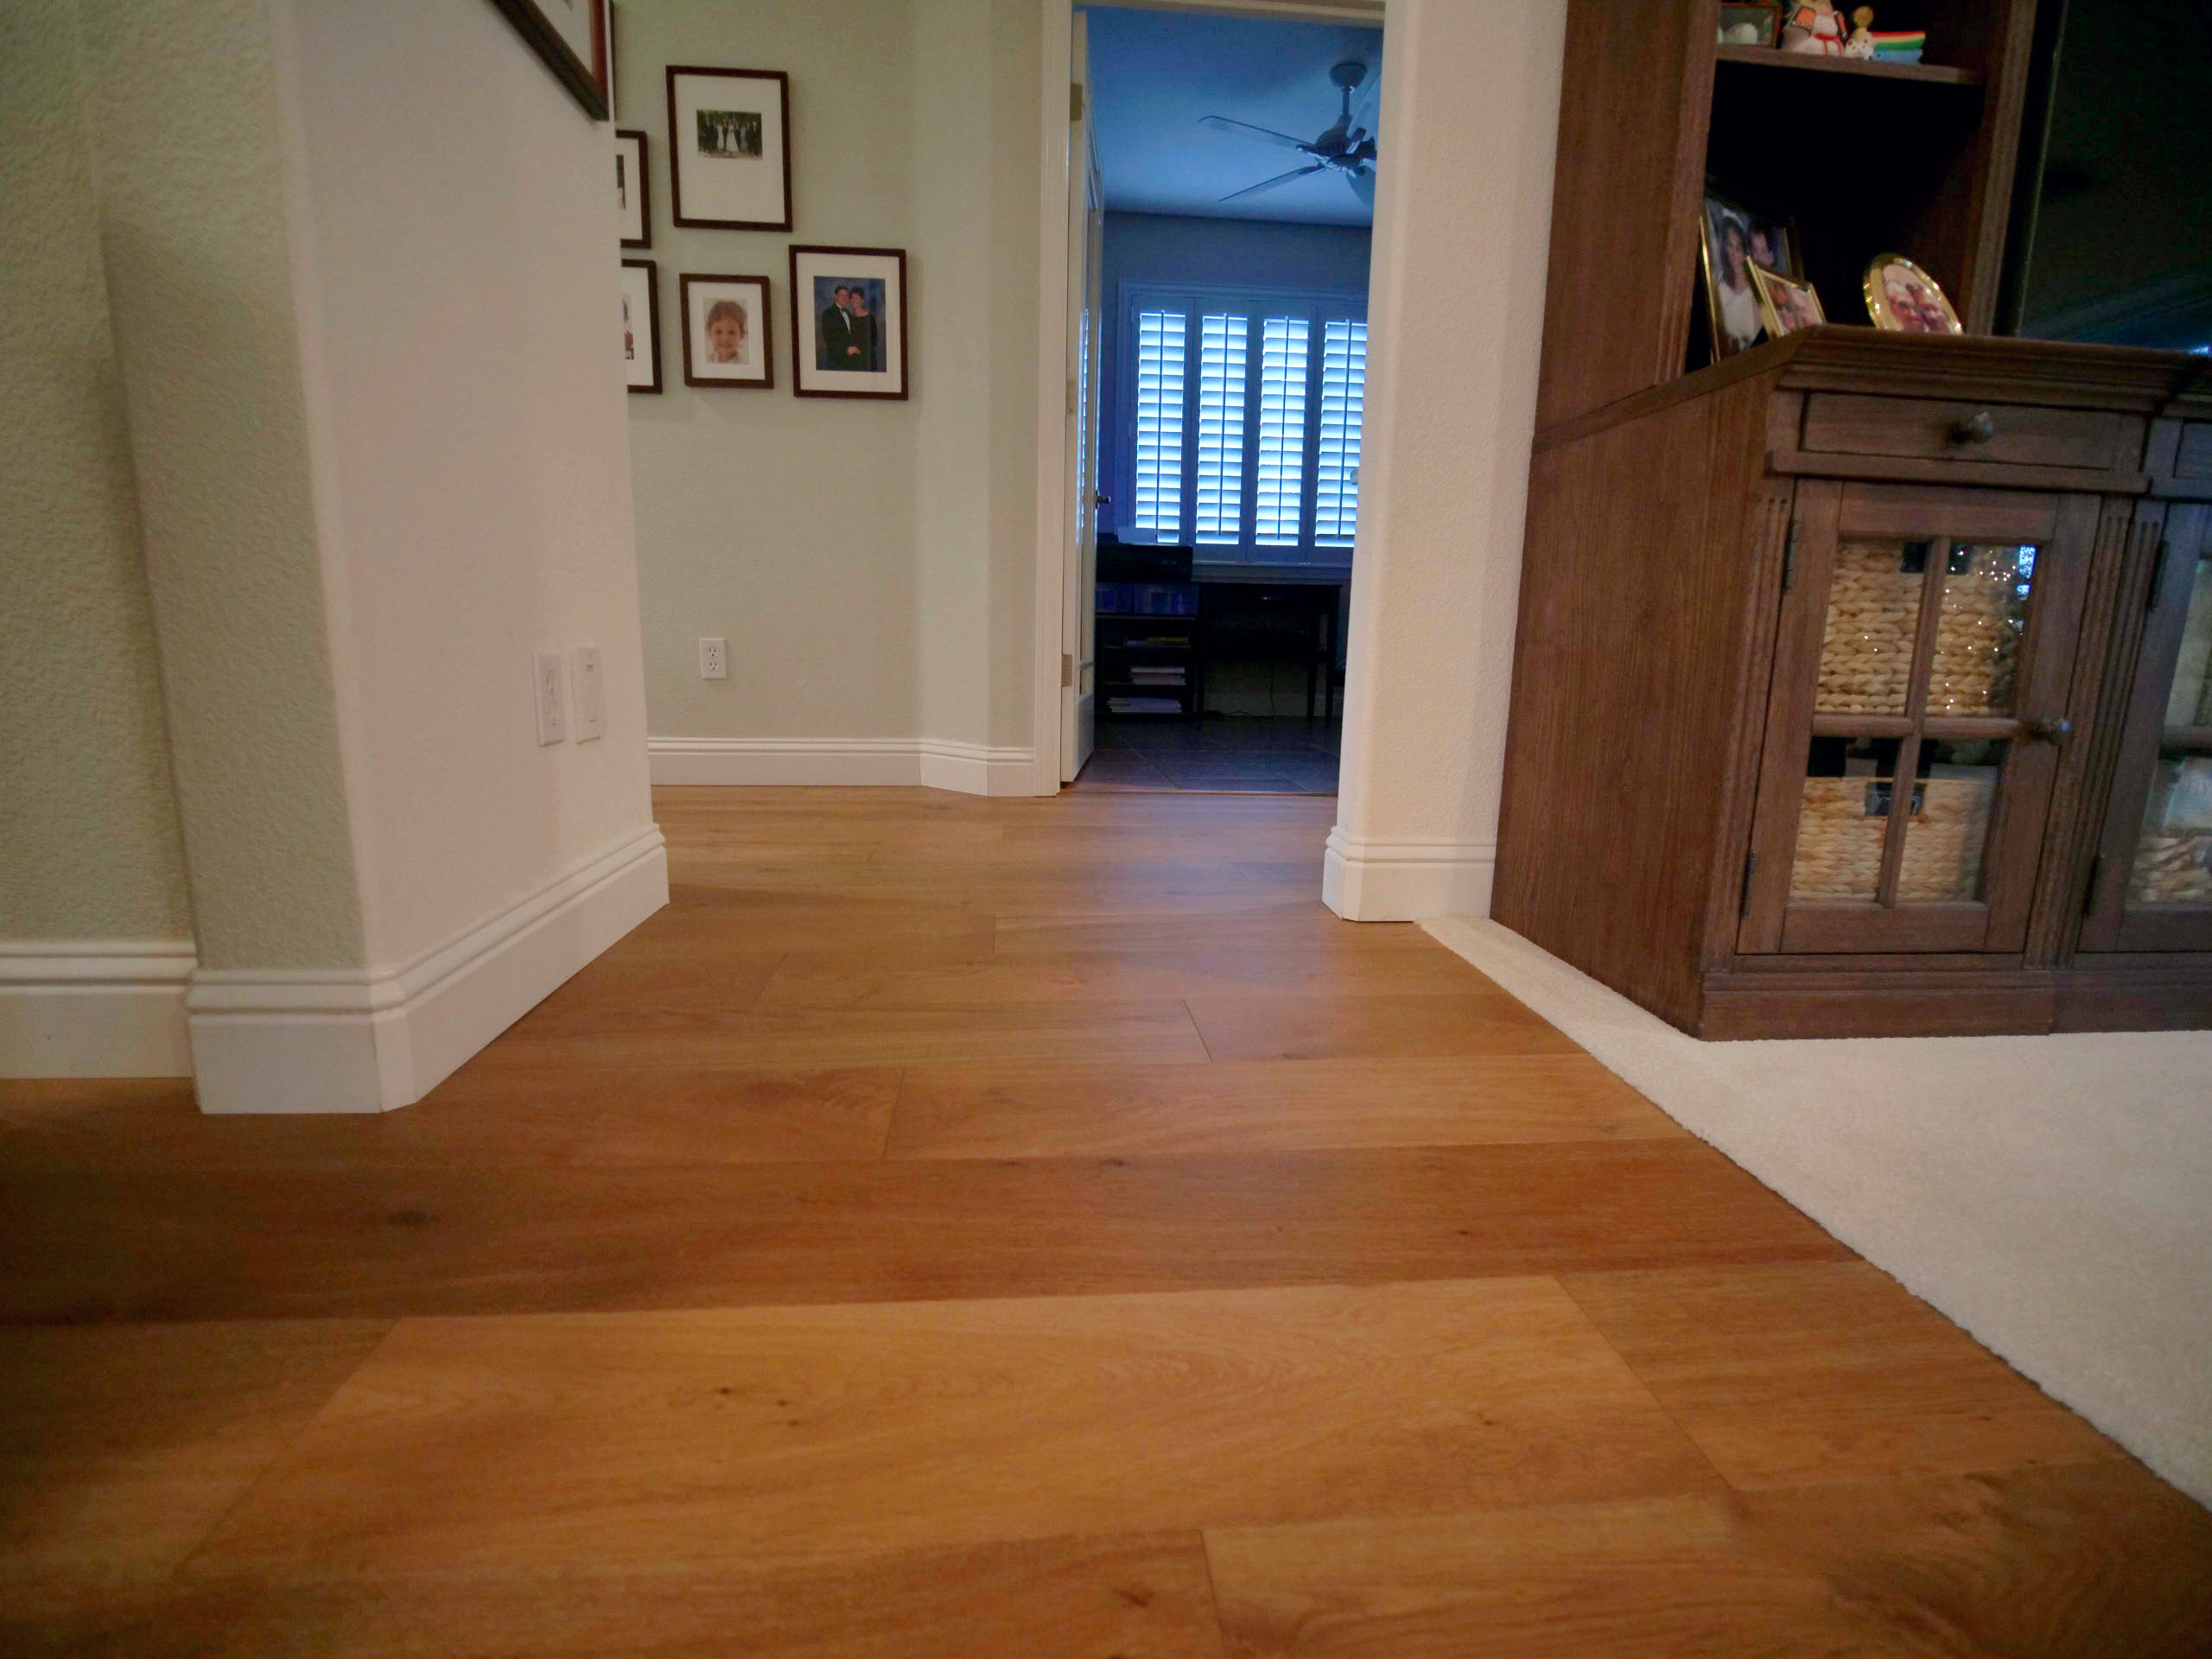 Living Room Entryway with Hardwood Flooring